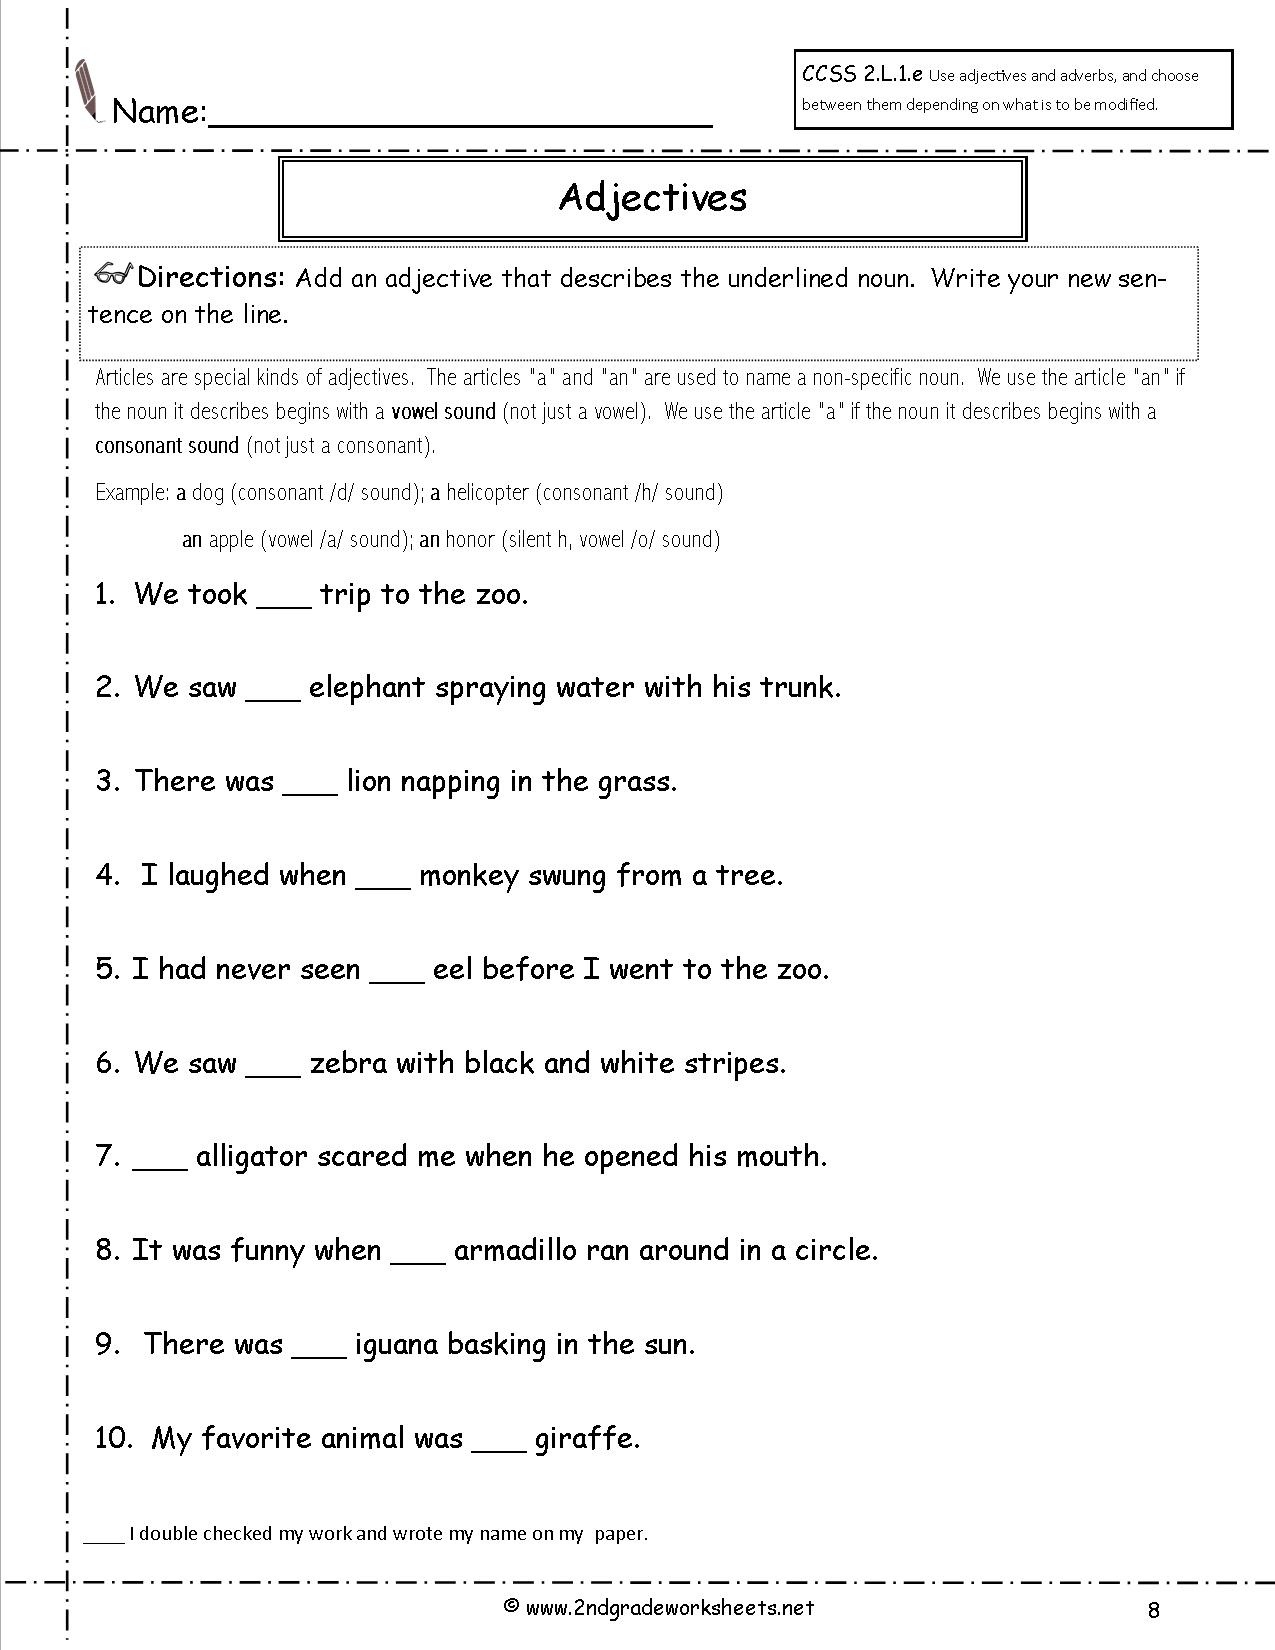 Free Language/grammar Worksheets And Printouts - Free Printable Third Grade Grammar Worksheets